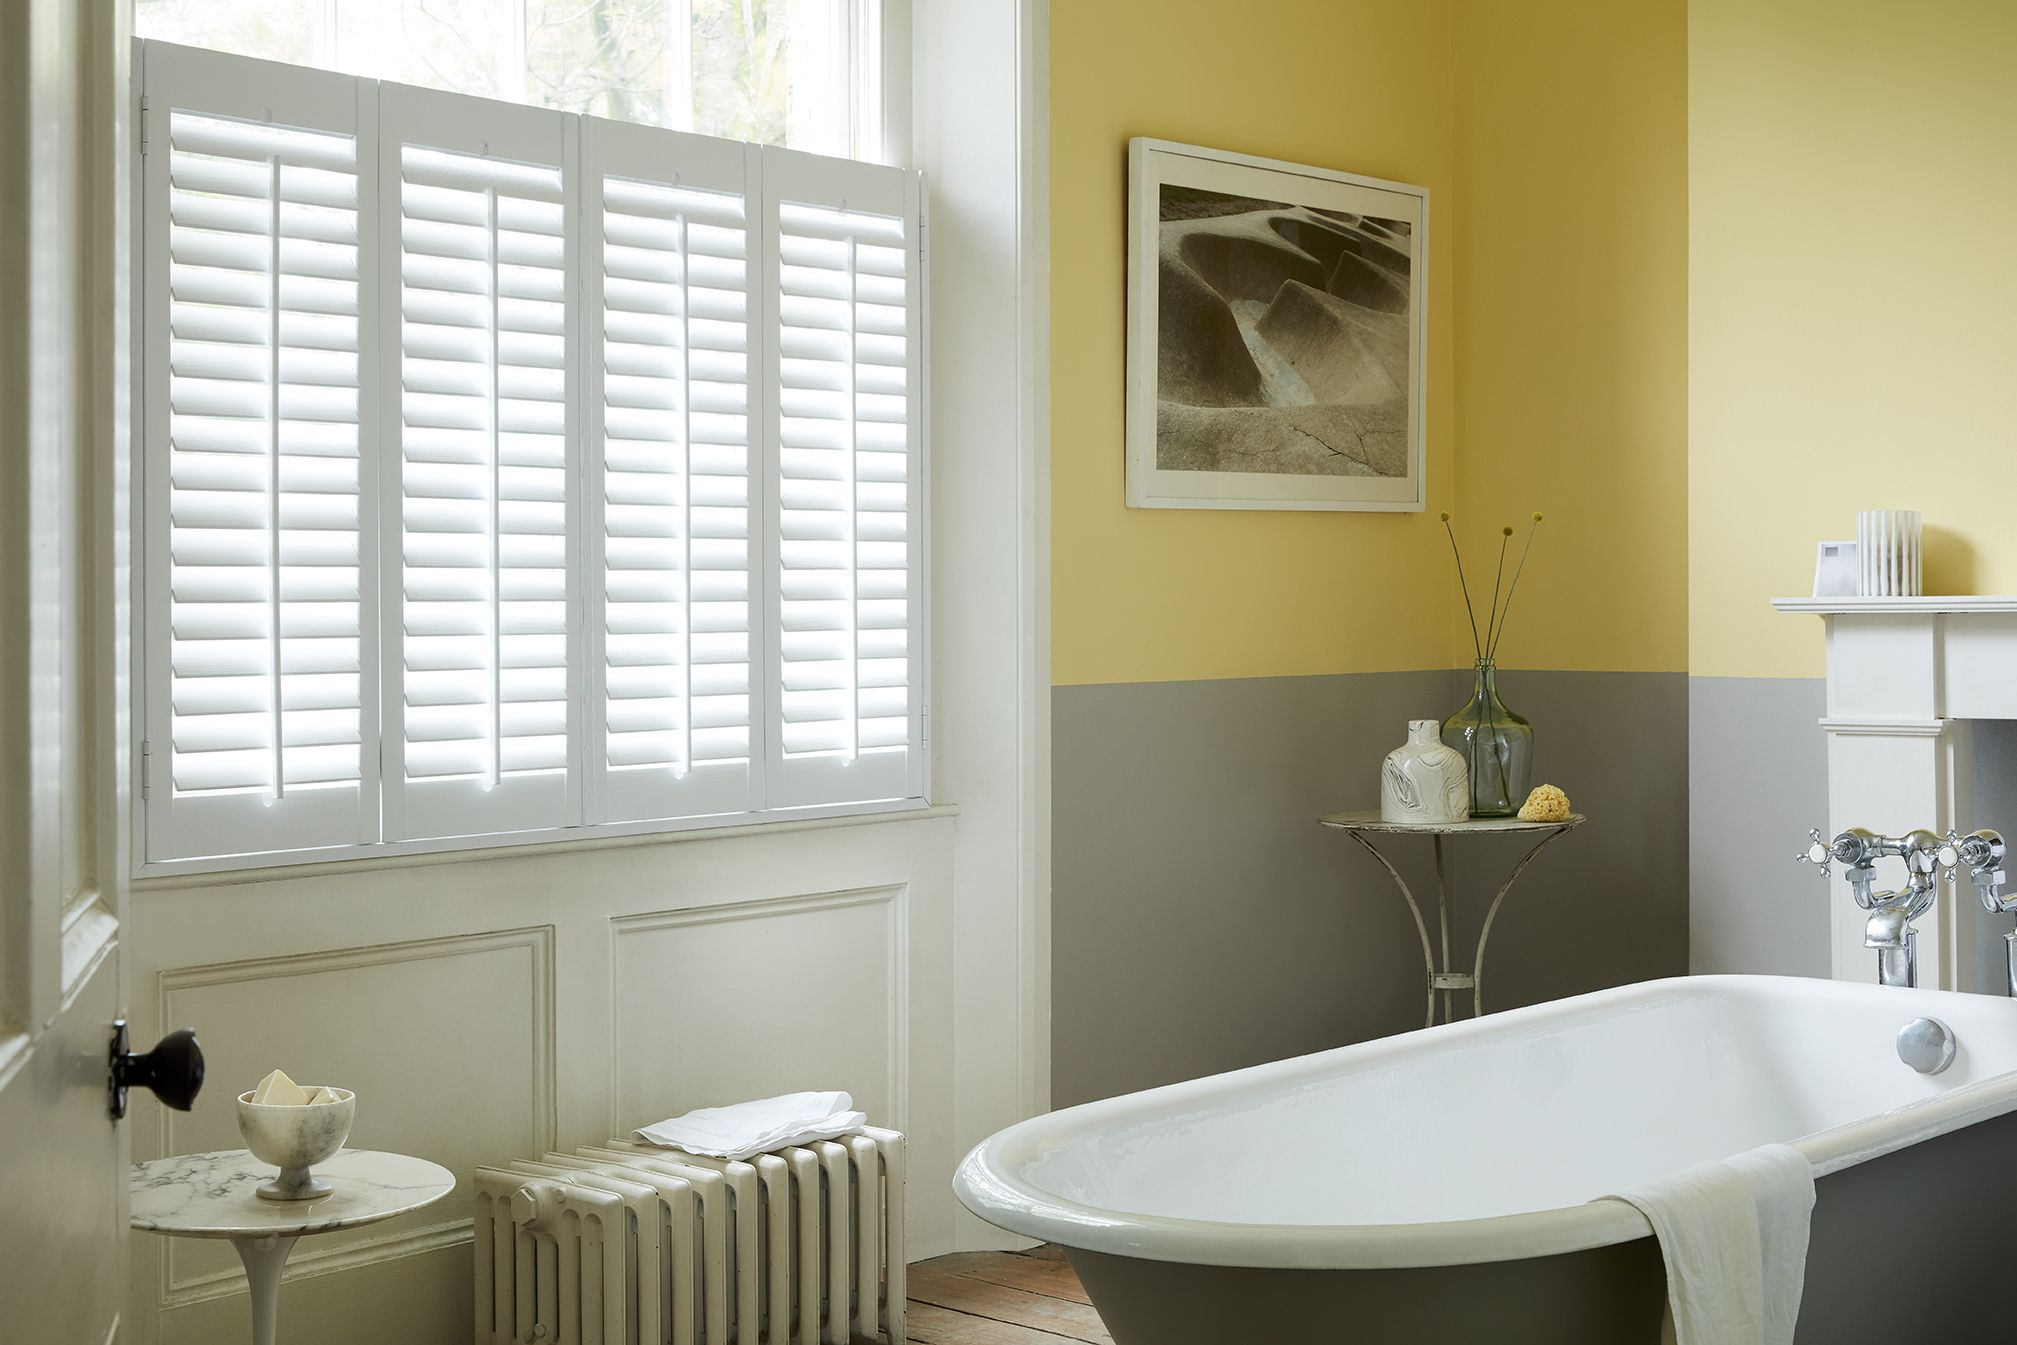 made from high grade polyvinyl these window shutters are 100 waterproof and highly durable they are ideal for rooms with a high level of humidity such as